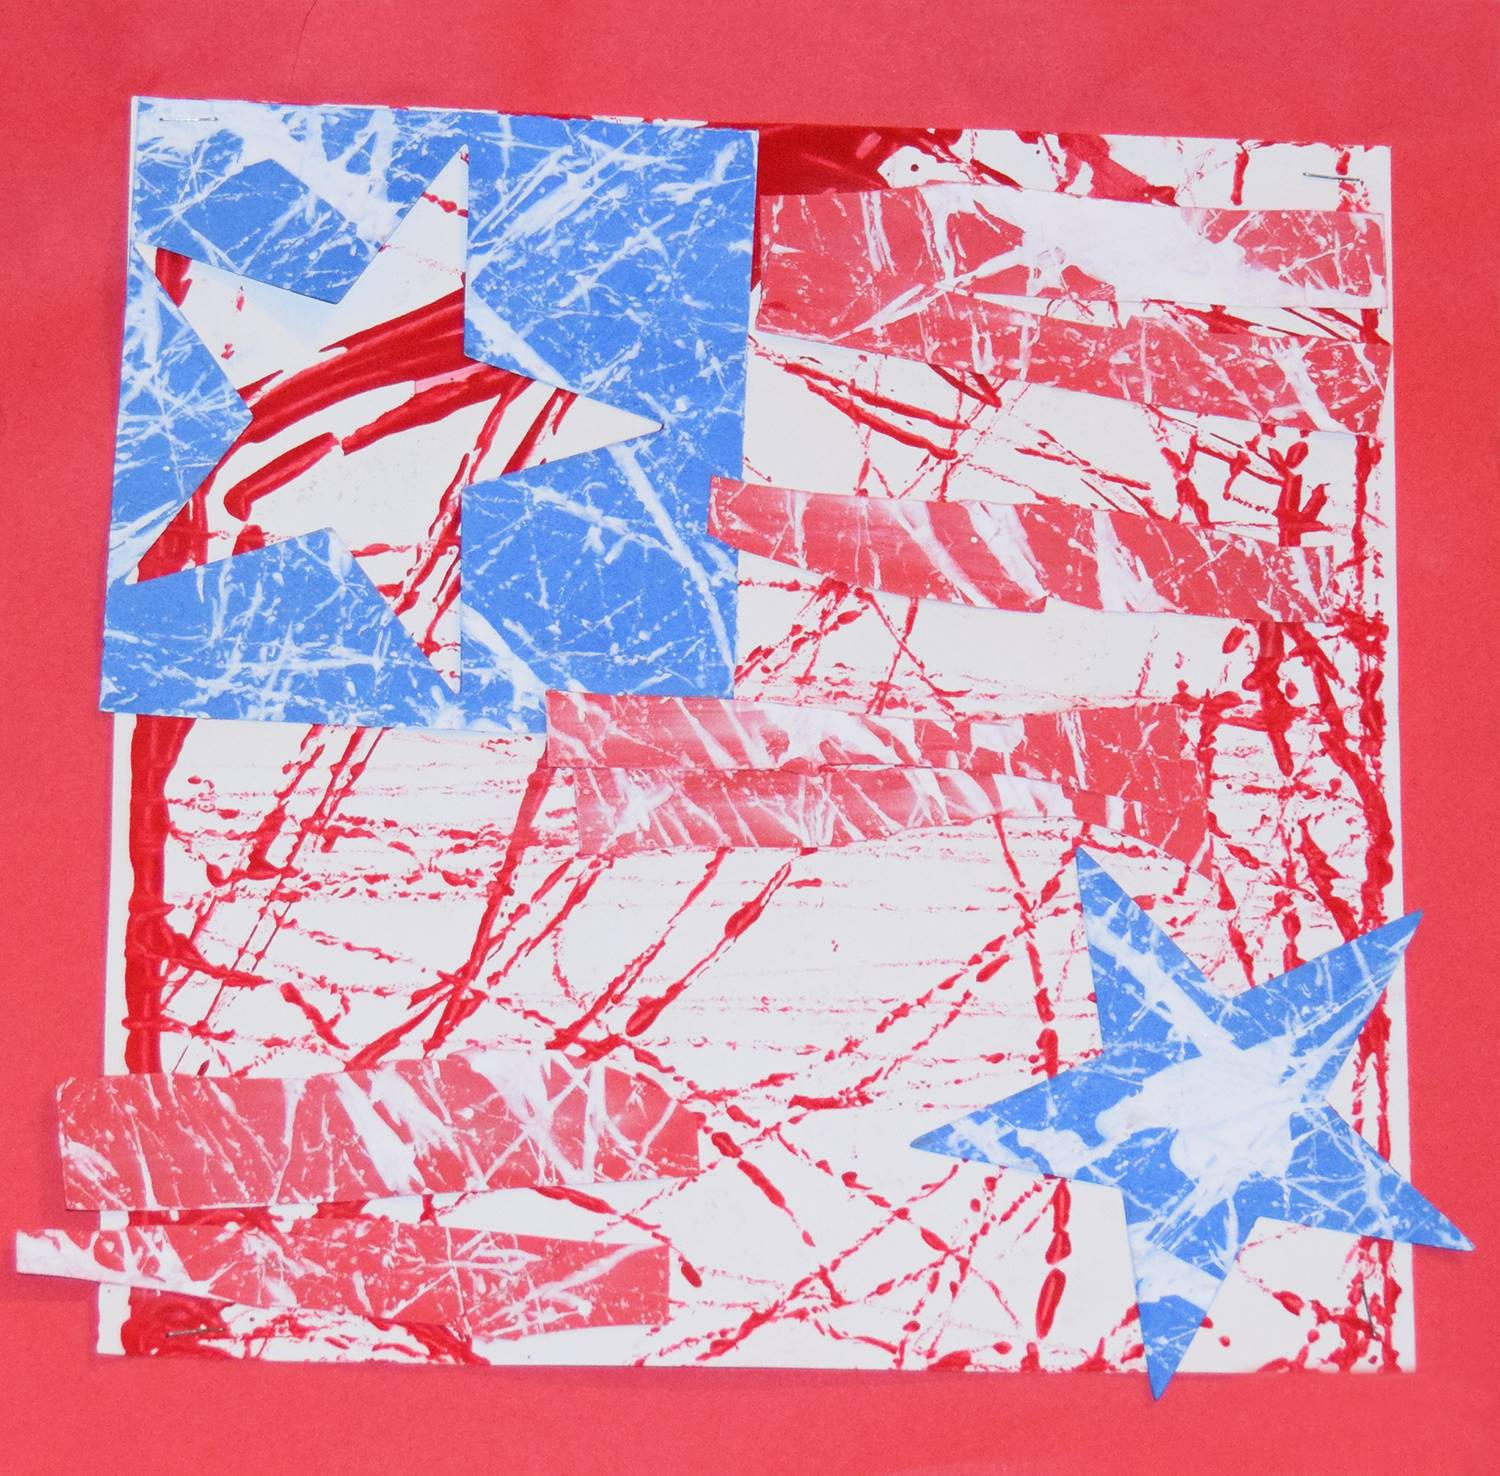 A red, white and blue montage of paint-splattered stars by John, a Clayton Avenue Elementary student